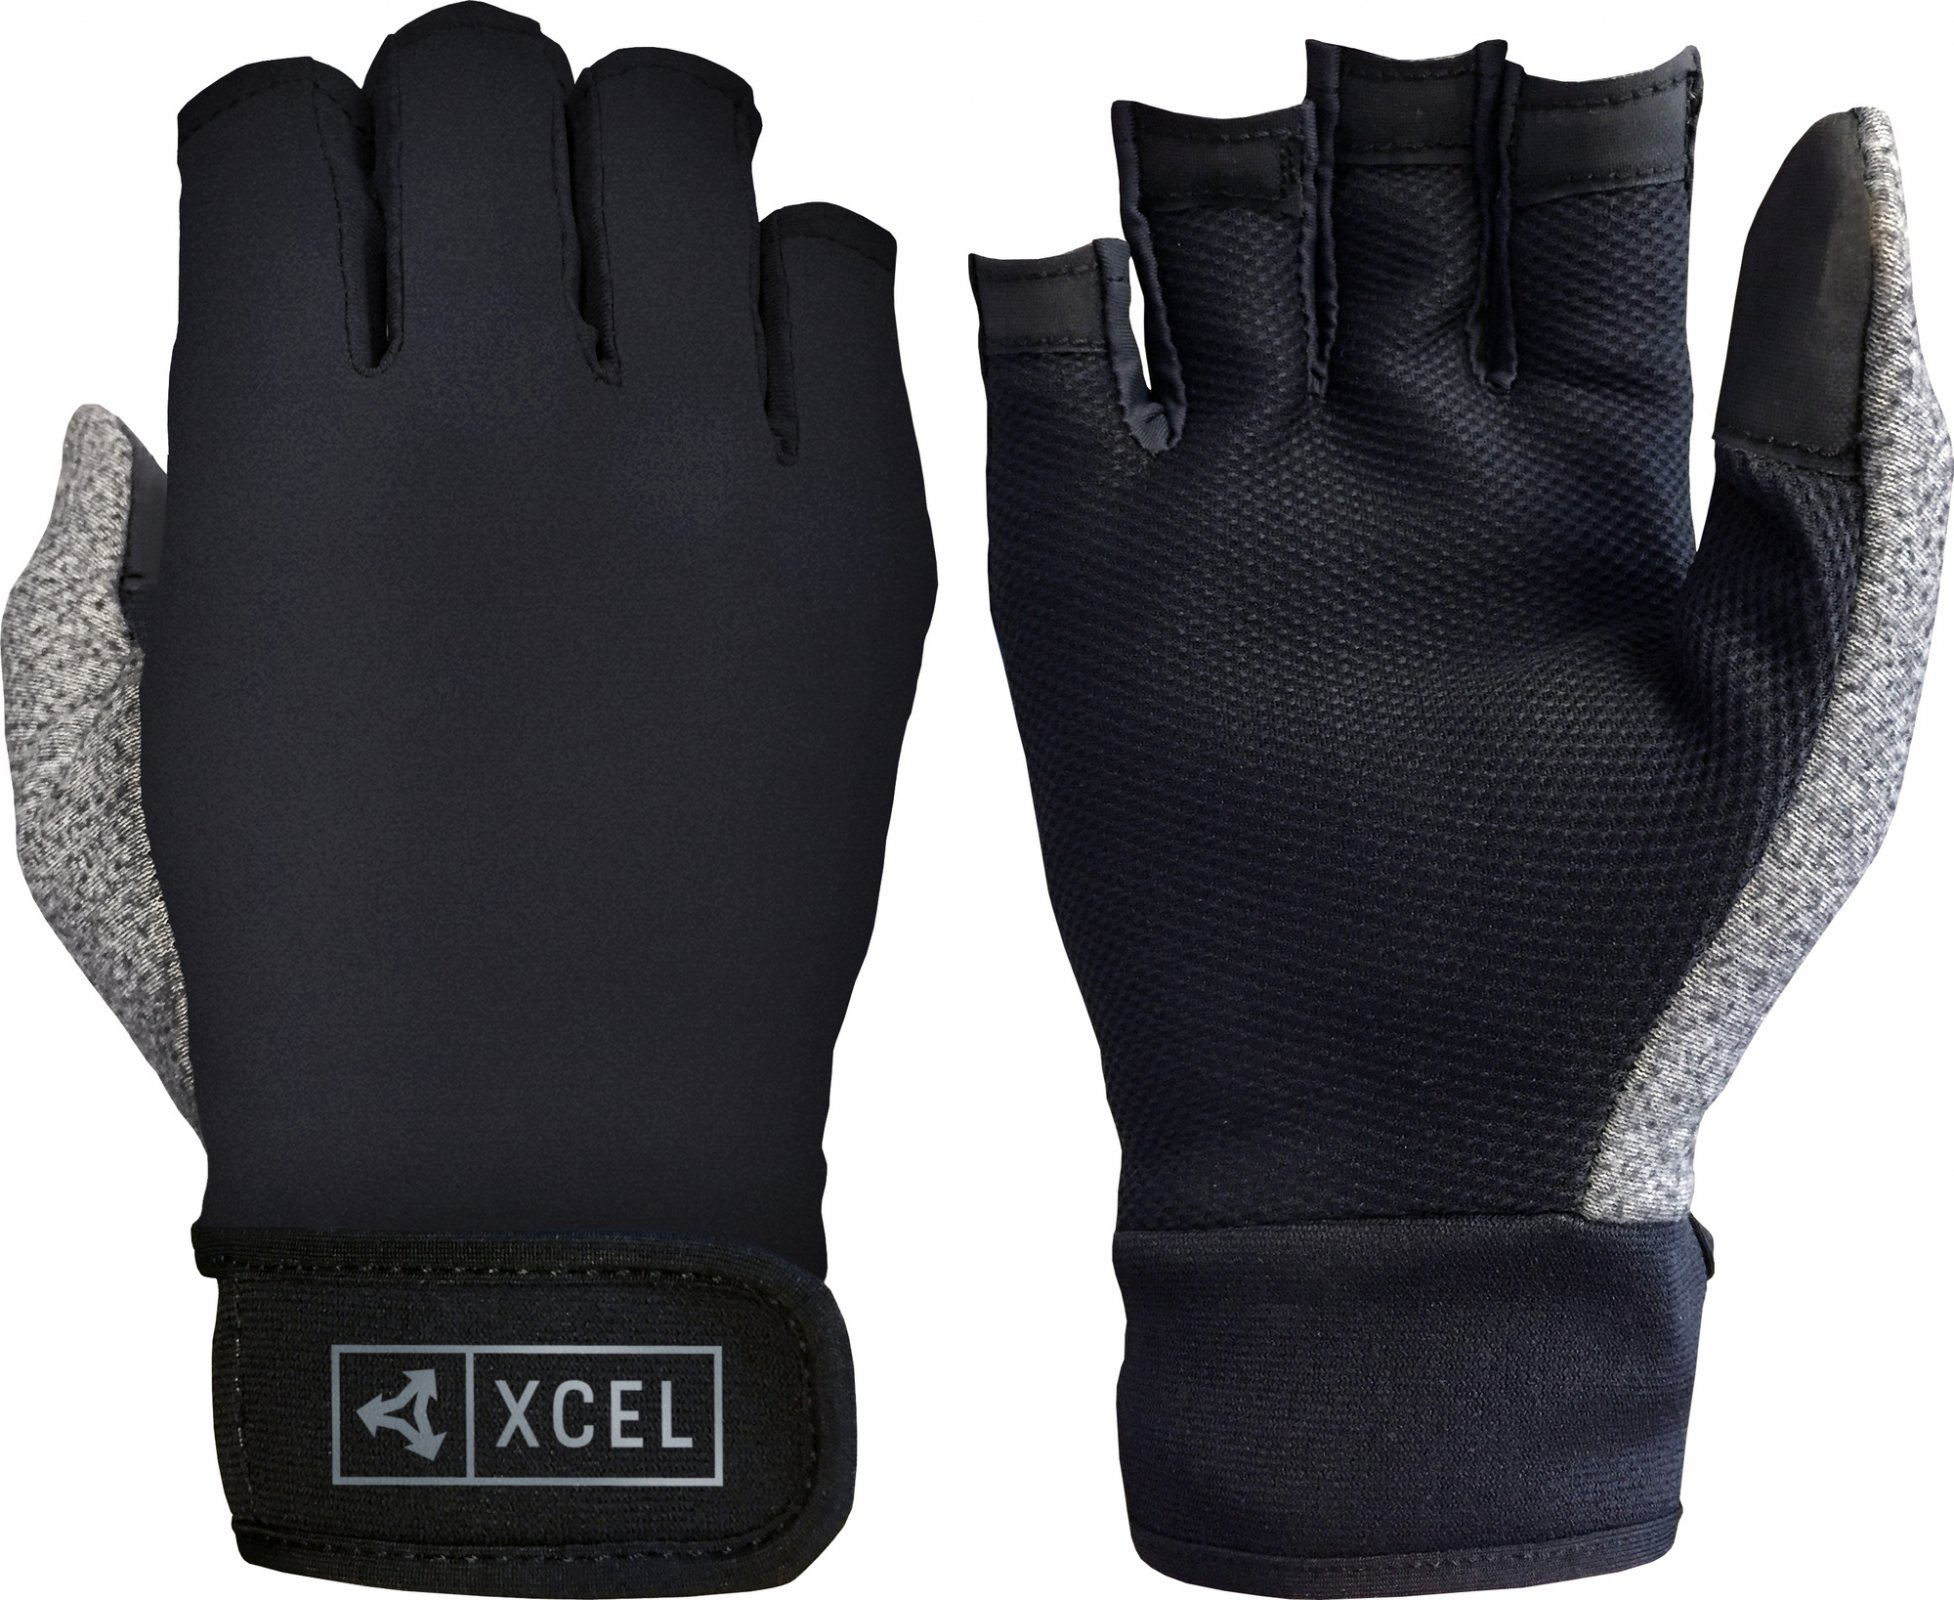 Xcel Covered Thumb Outrigger Paddle Glove